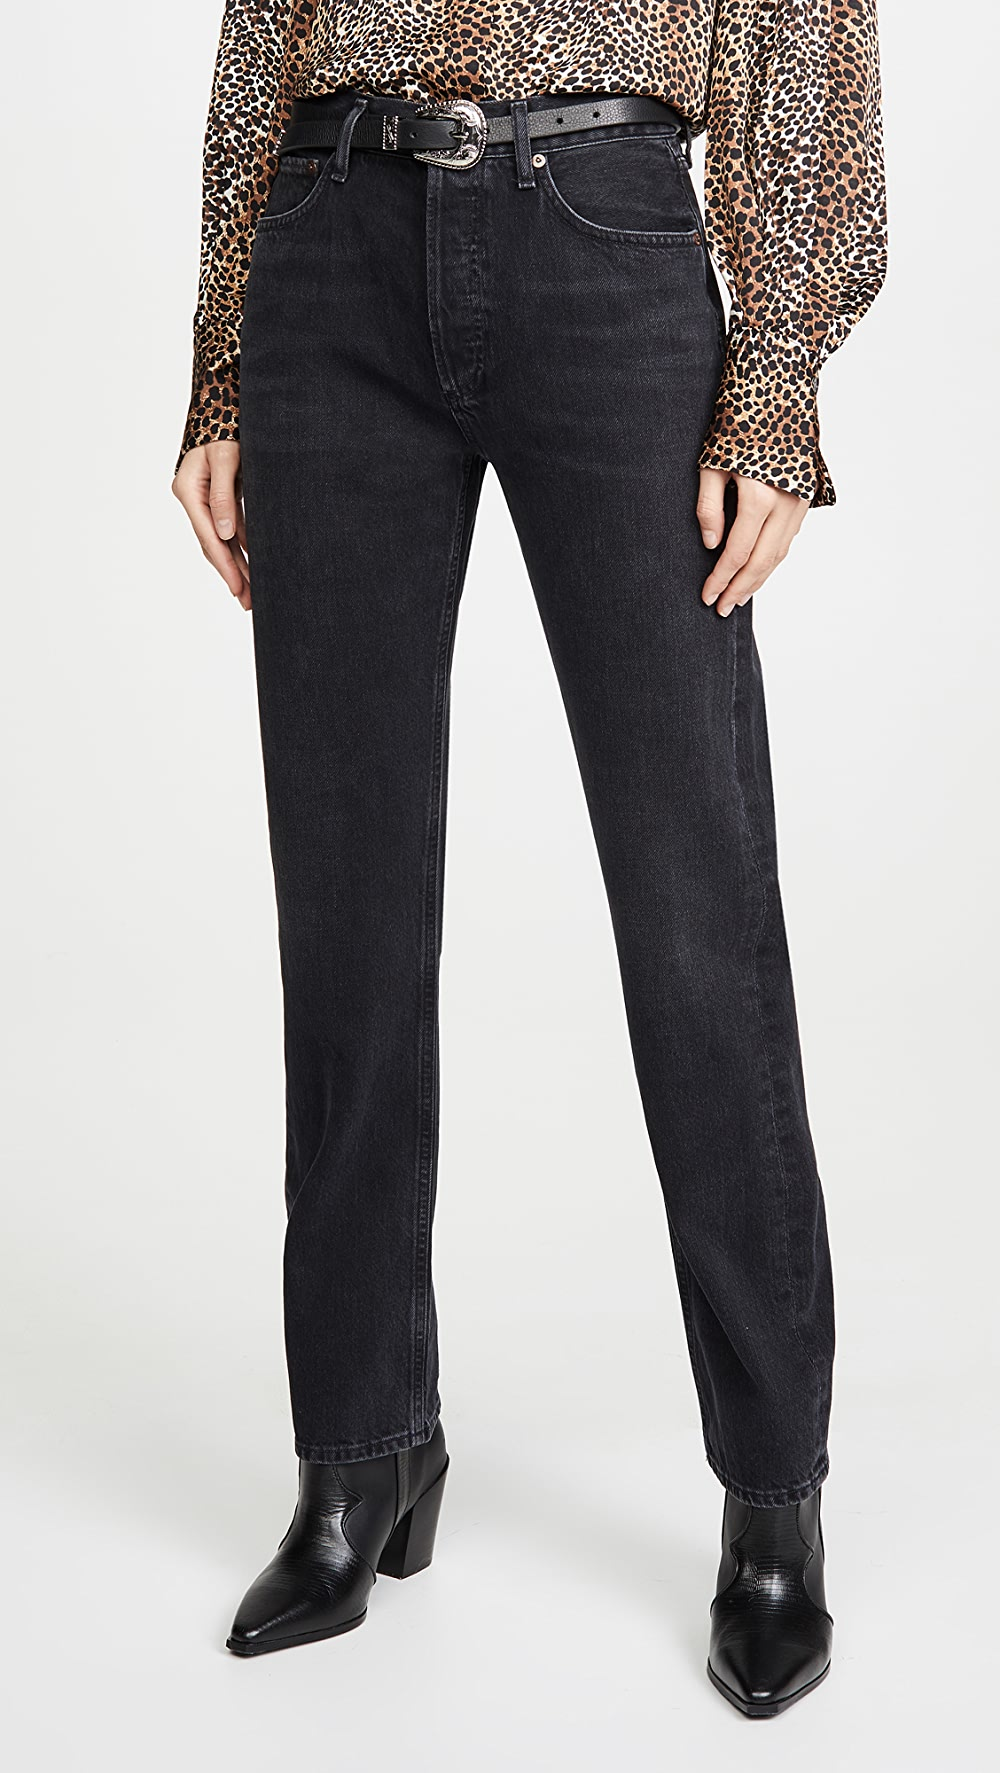 100% Quality Agolde - Lana Mid Rise Straight Jeans The Latest Fashion